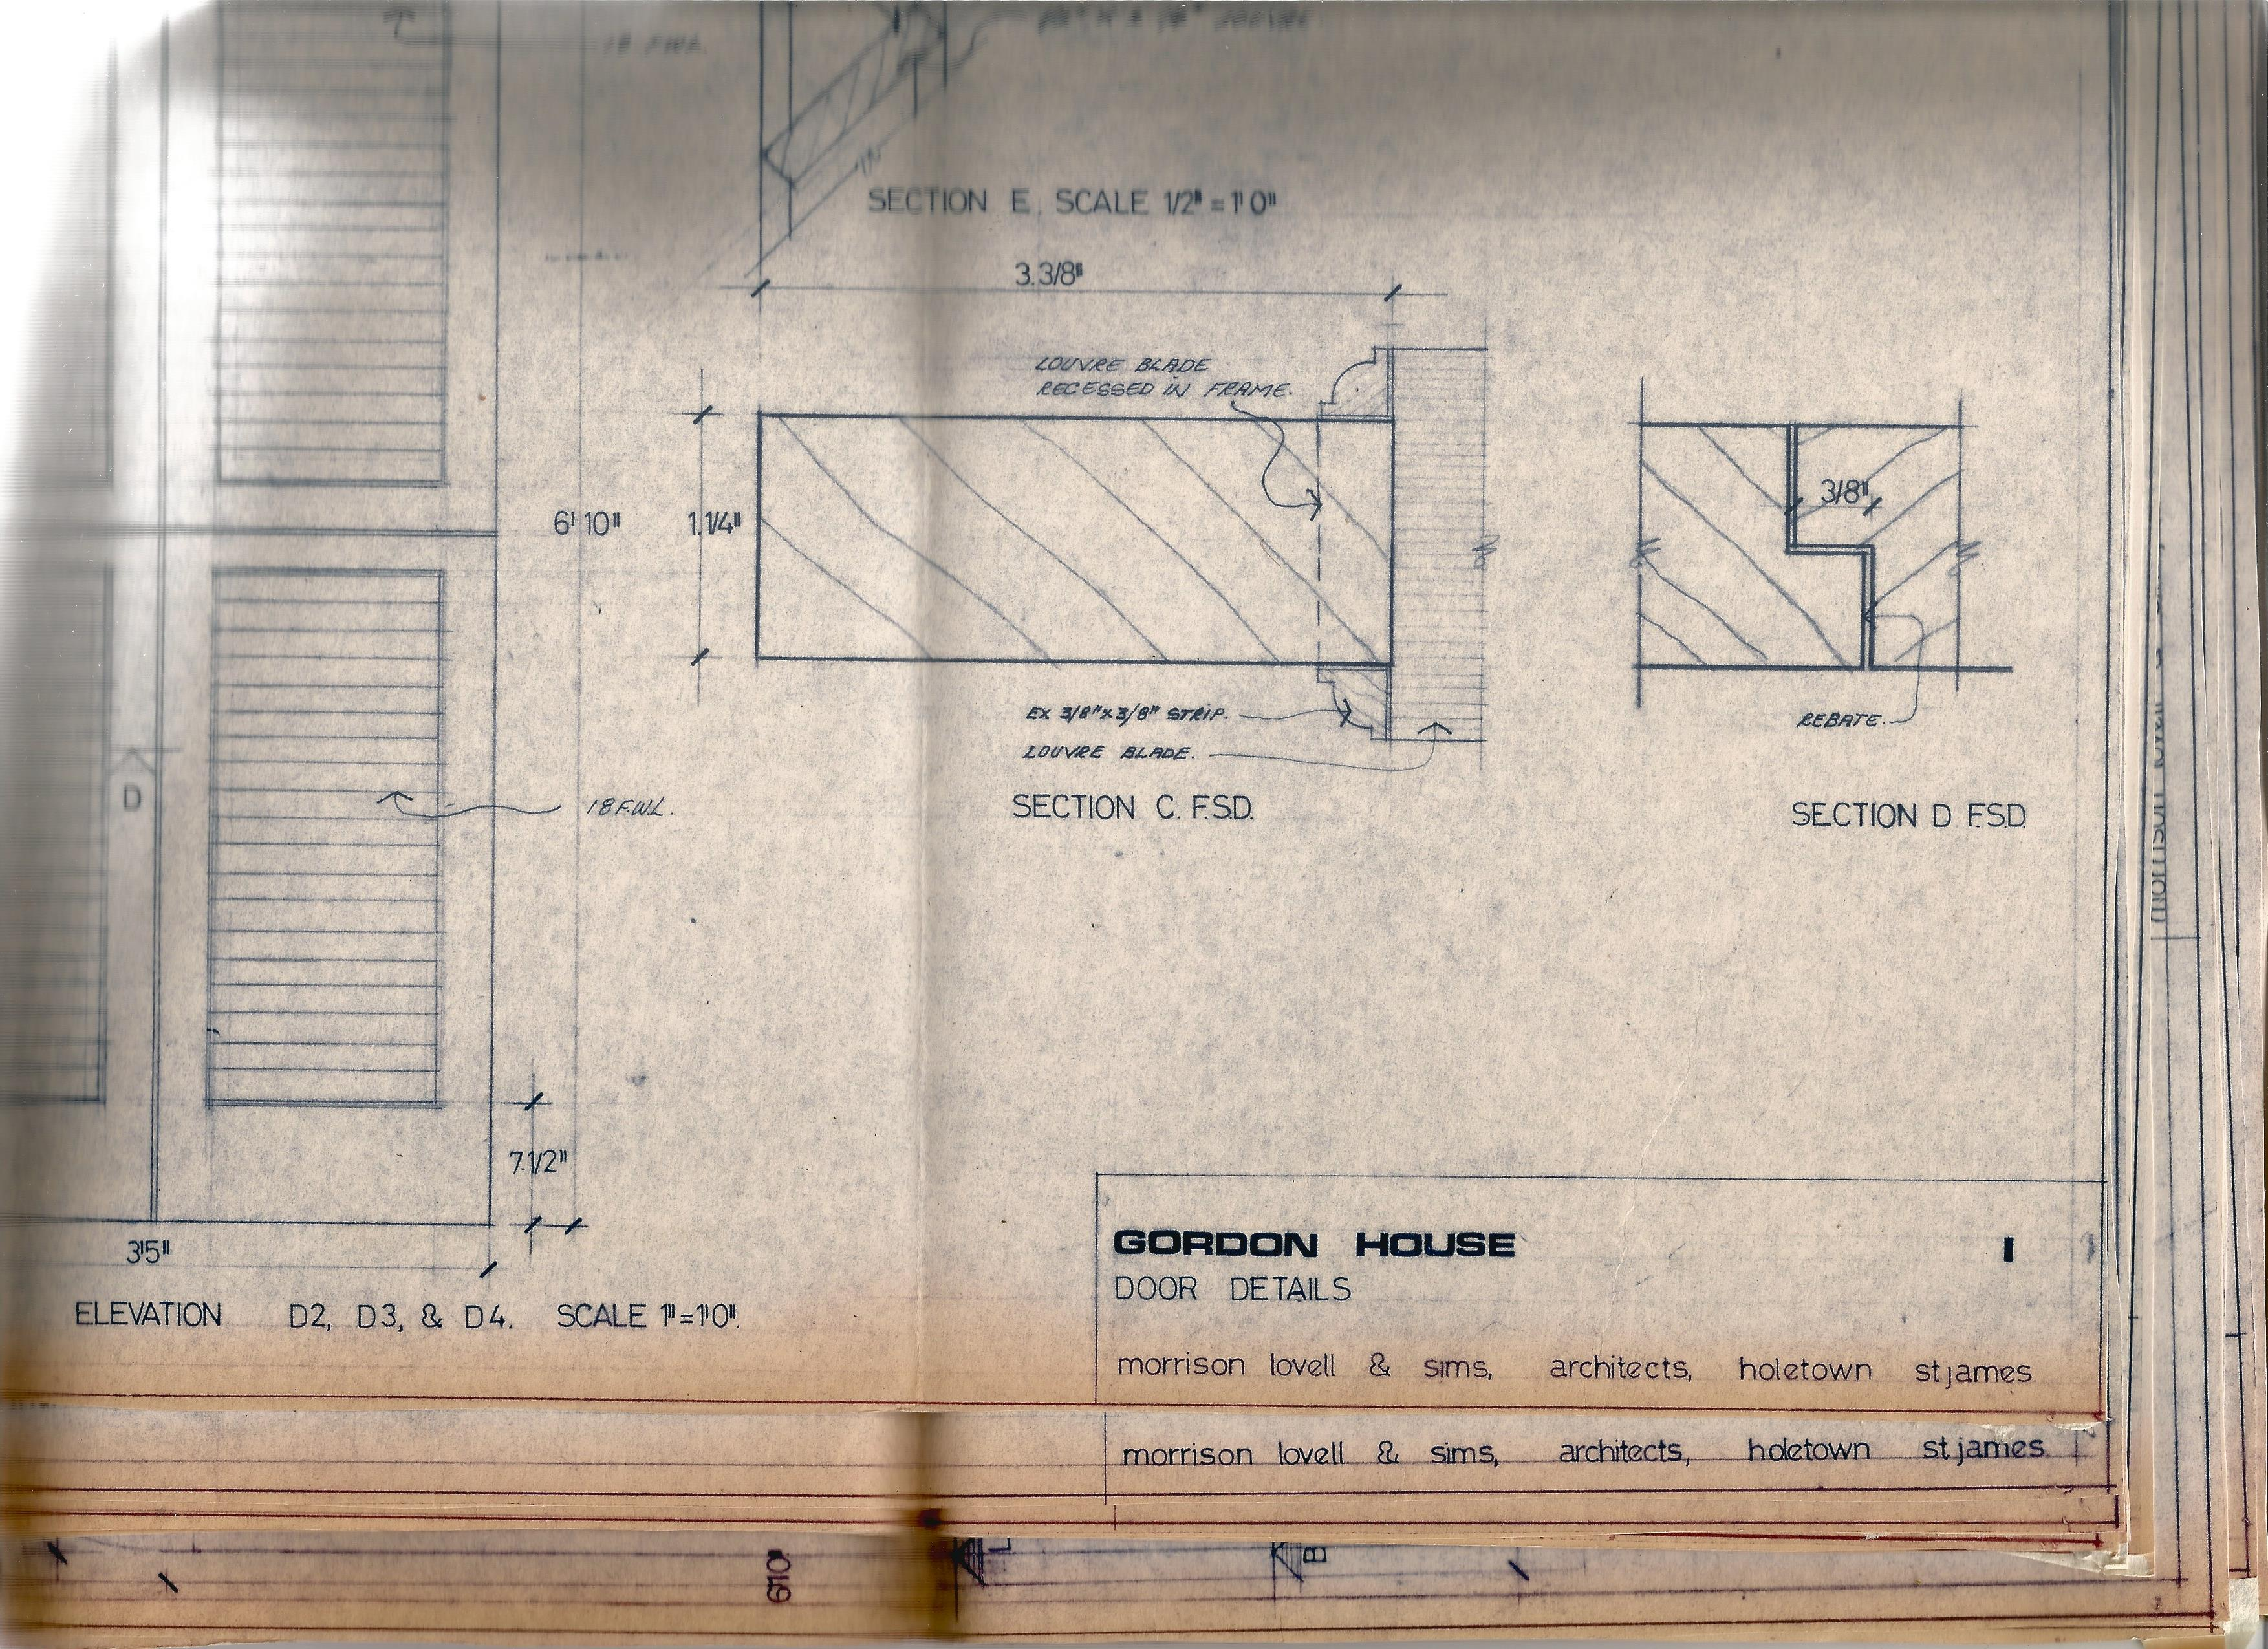 Architectural Drawings & Diagrams for Alterations at Bath Assembly Rooms in the 1960s Includes - Image 11 of 16